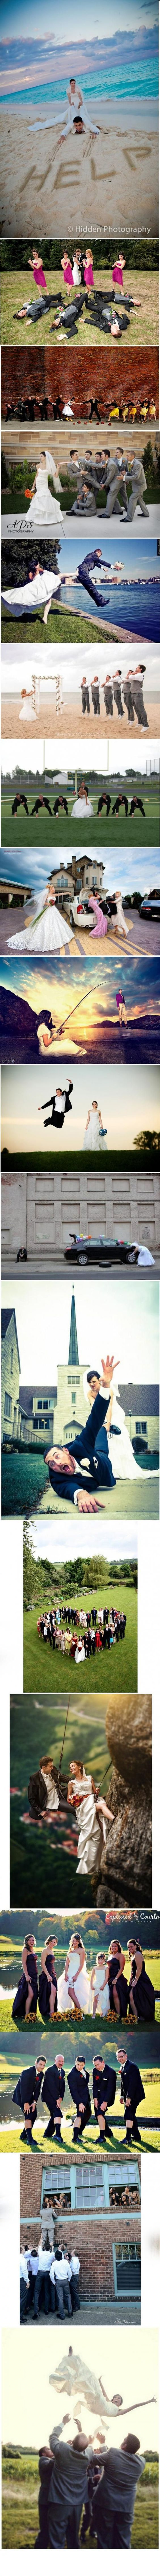 Funny #wedding photo ideas collection. #cocomelody